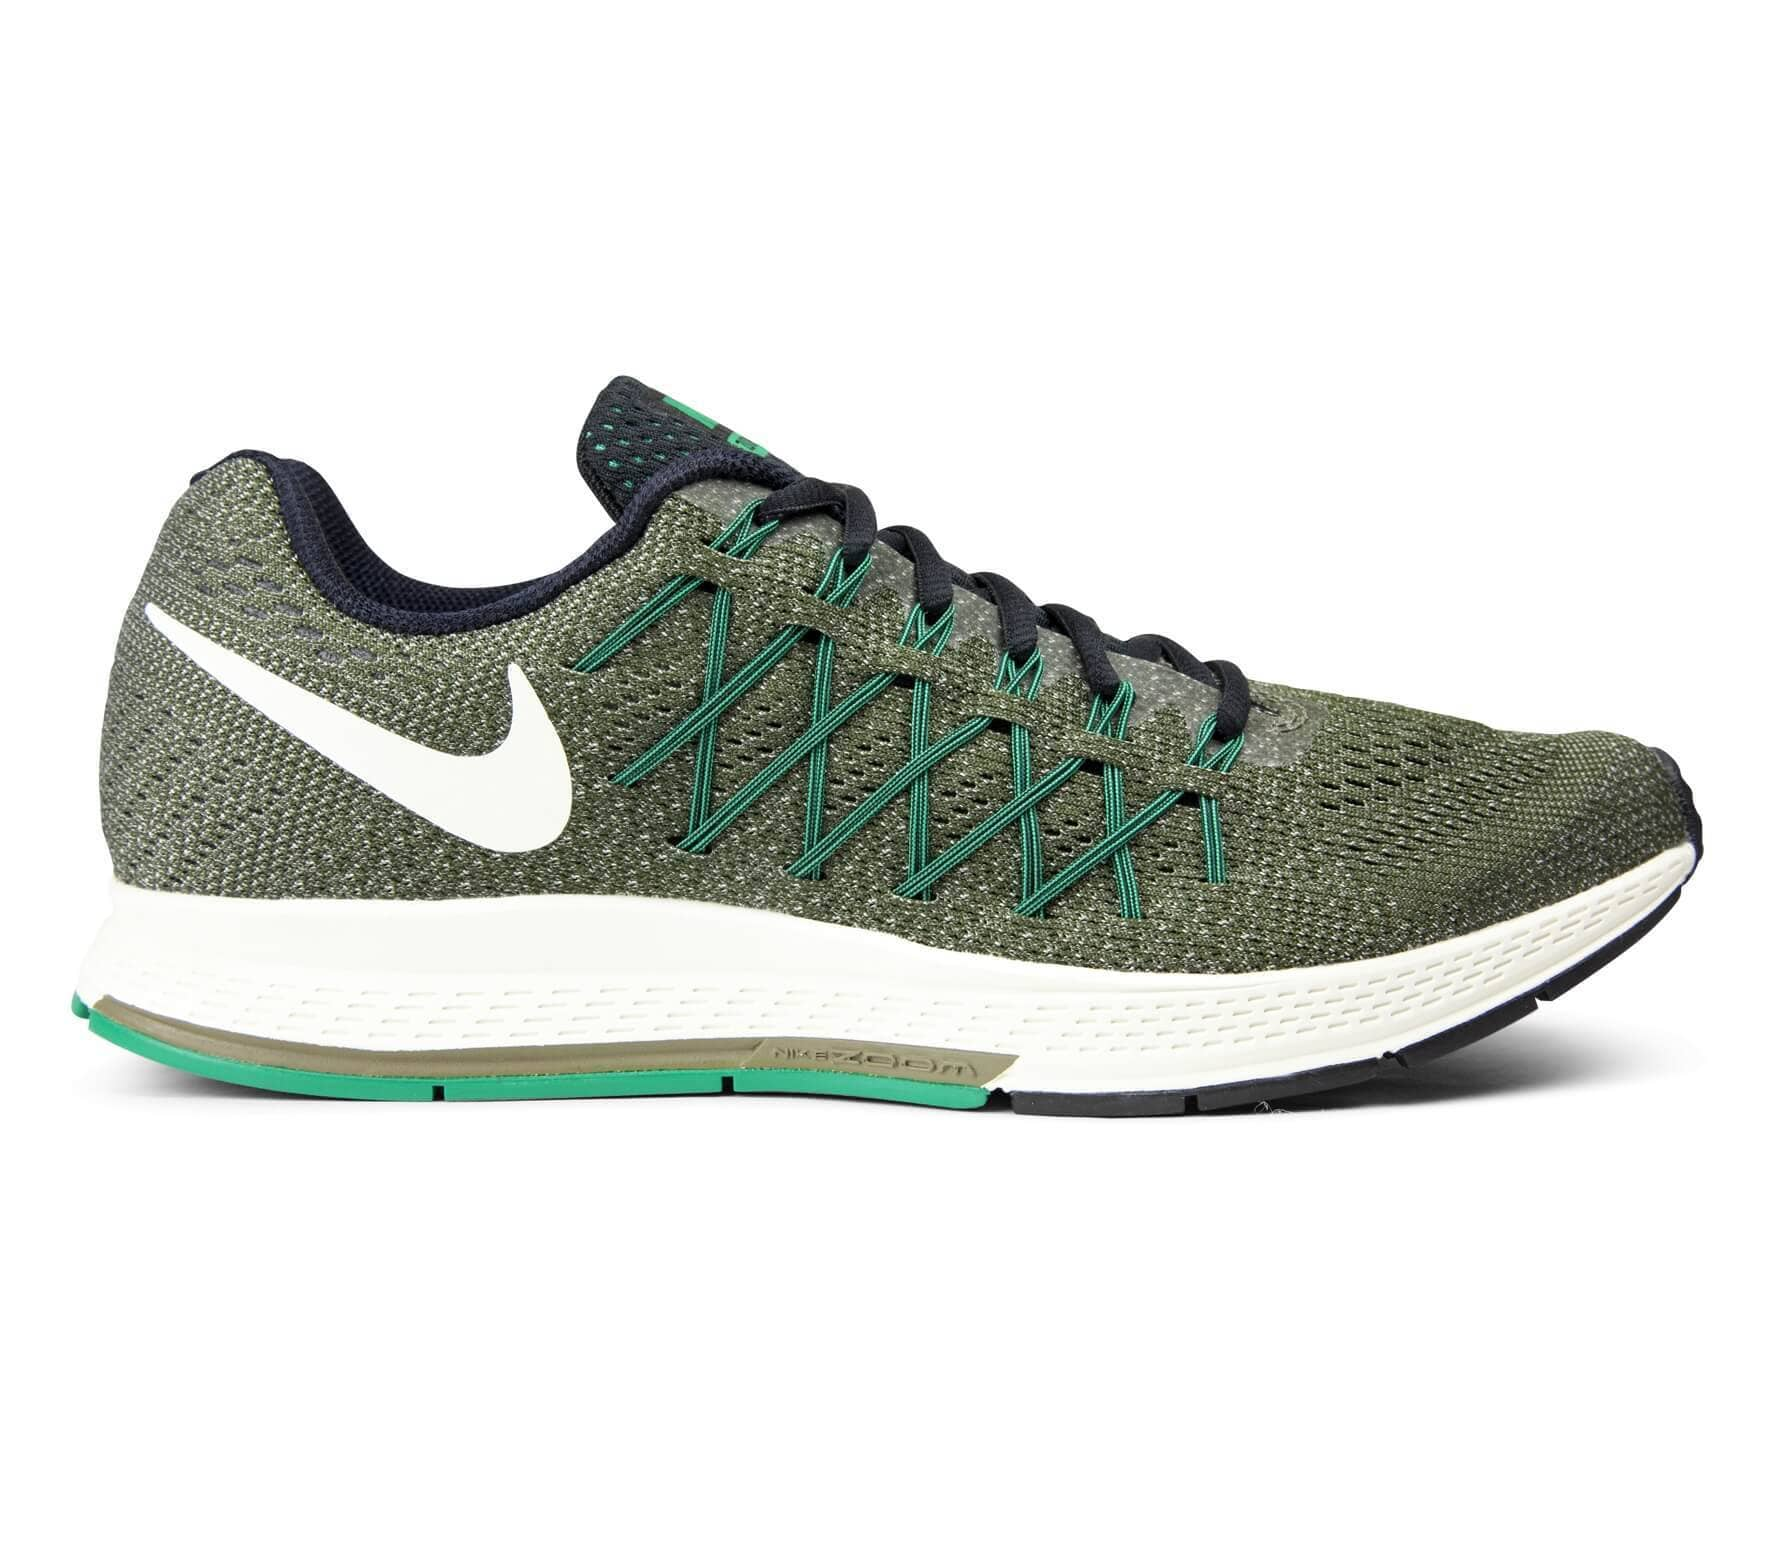 1e9189fb848 Nike - Air Zoom Pegasus 32 men s running shoes (khaki) - buy it at ...